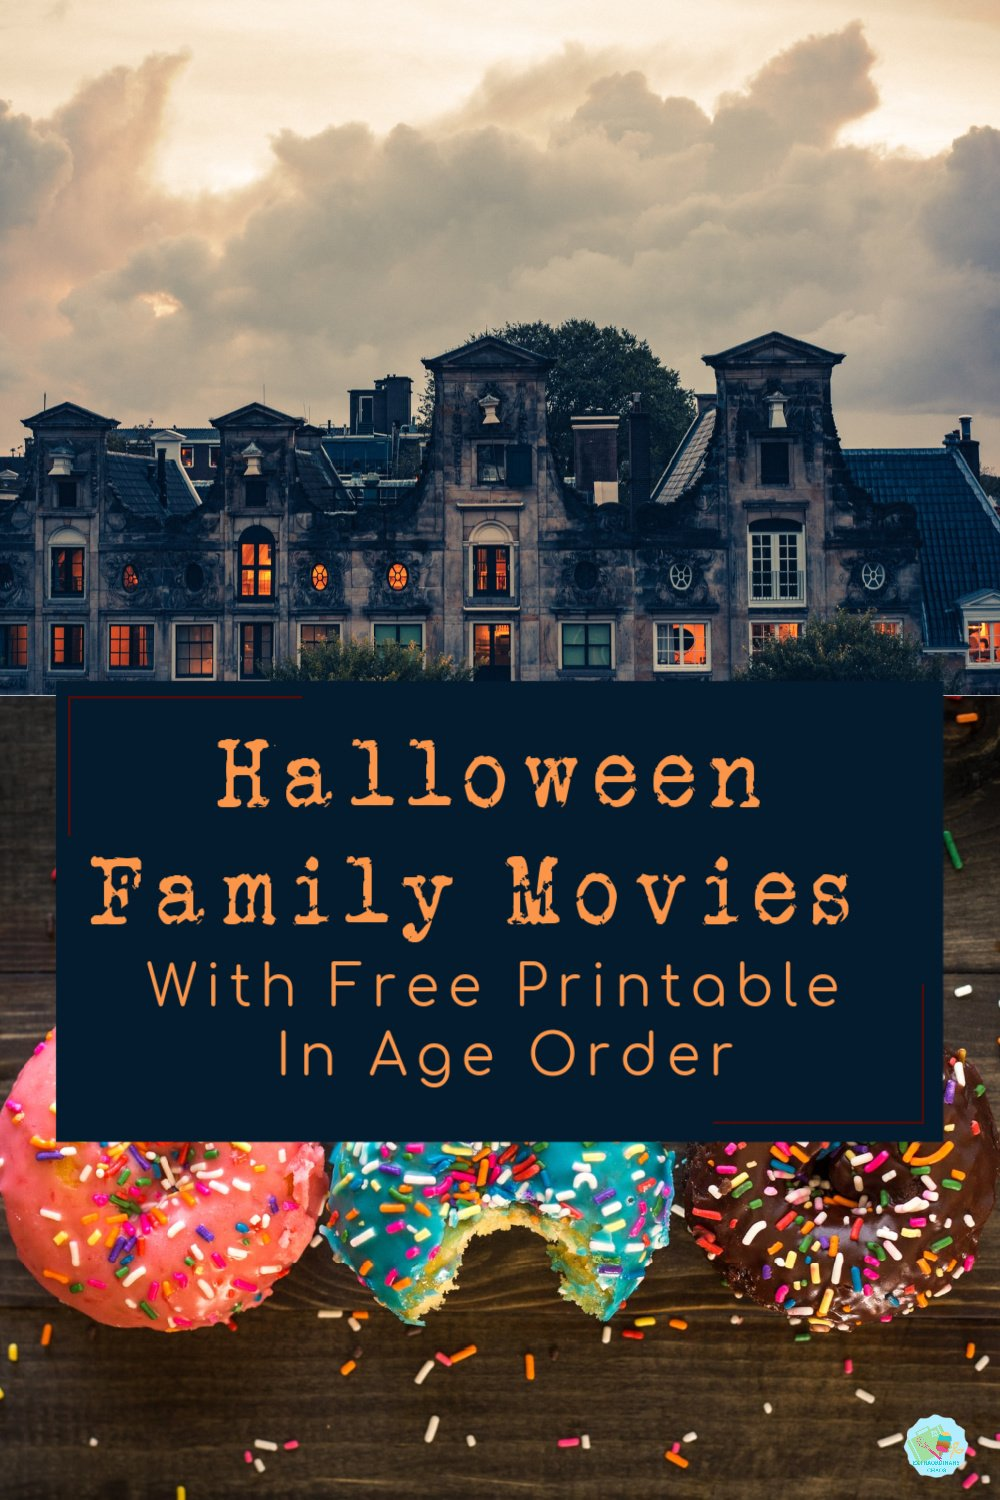 The best Halloween Movies for families with Free Printable to download and keep in age order